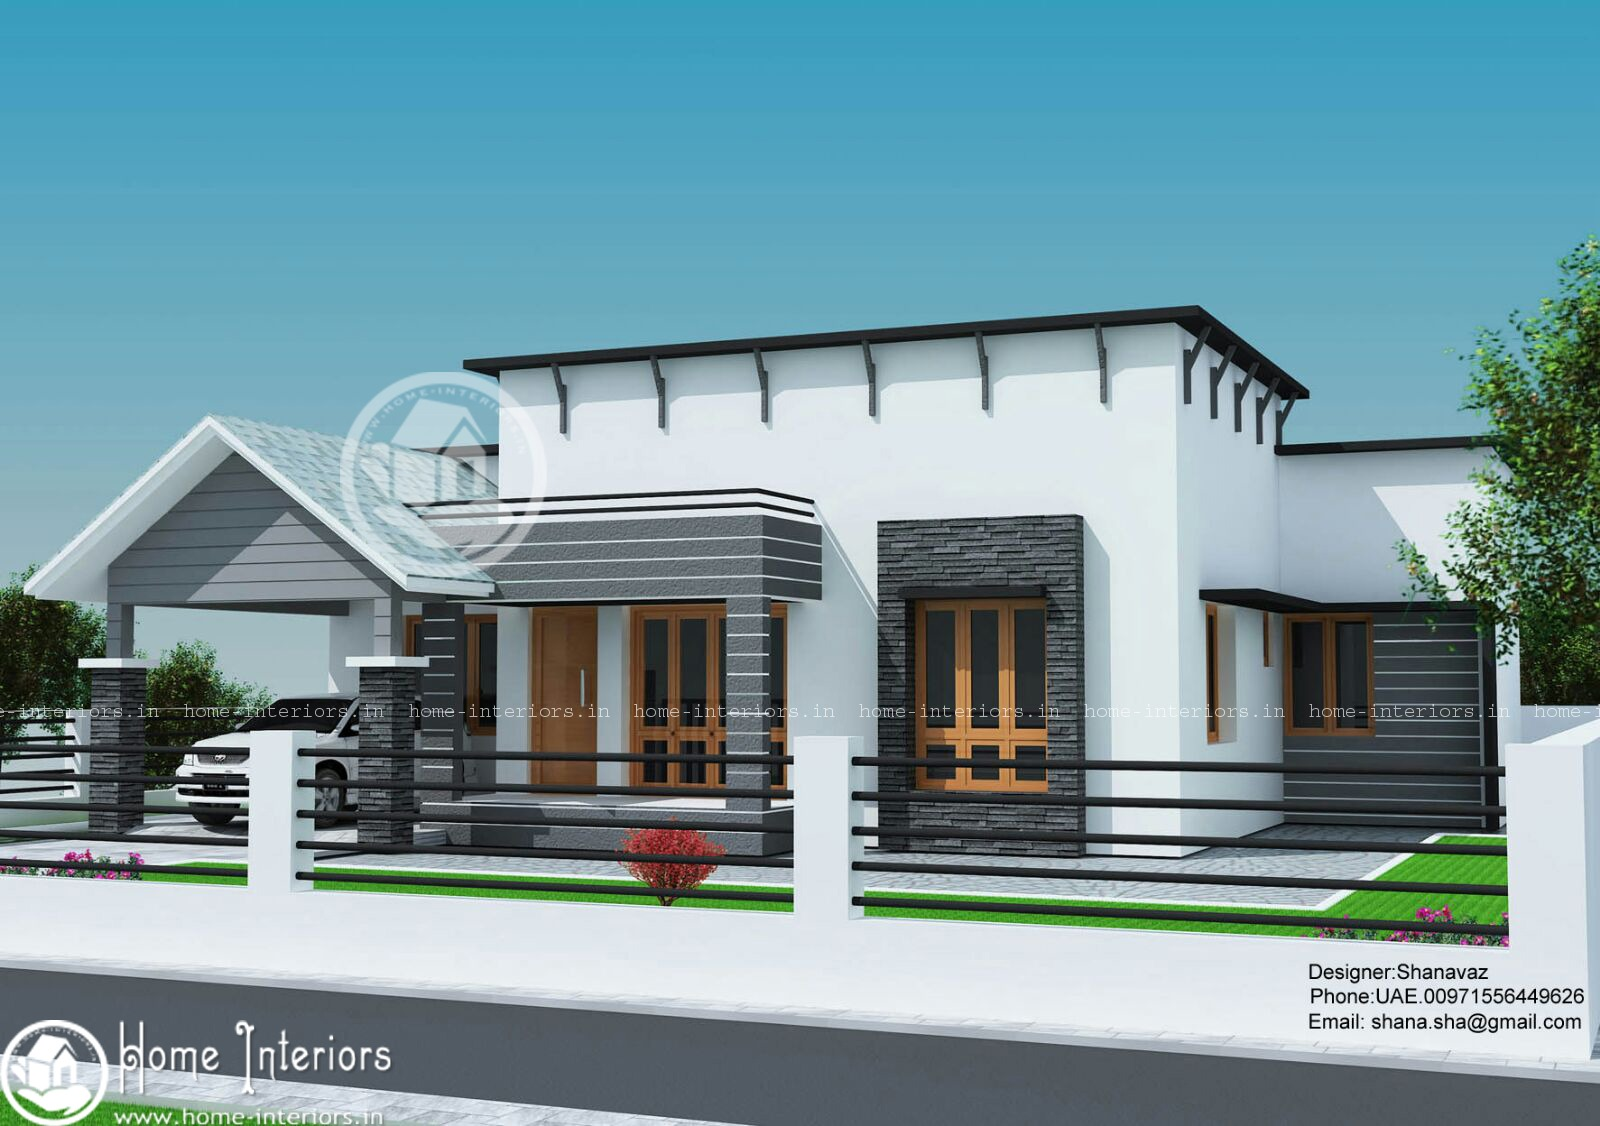 House Plans For 1200 Sq Ft 1300 Sq Ft Single Floor Contemporary Home Design